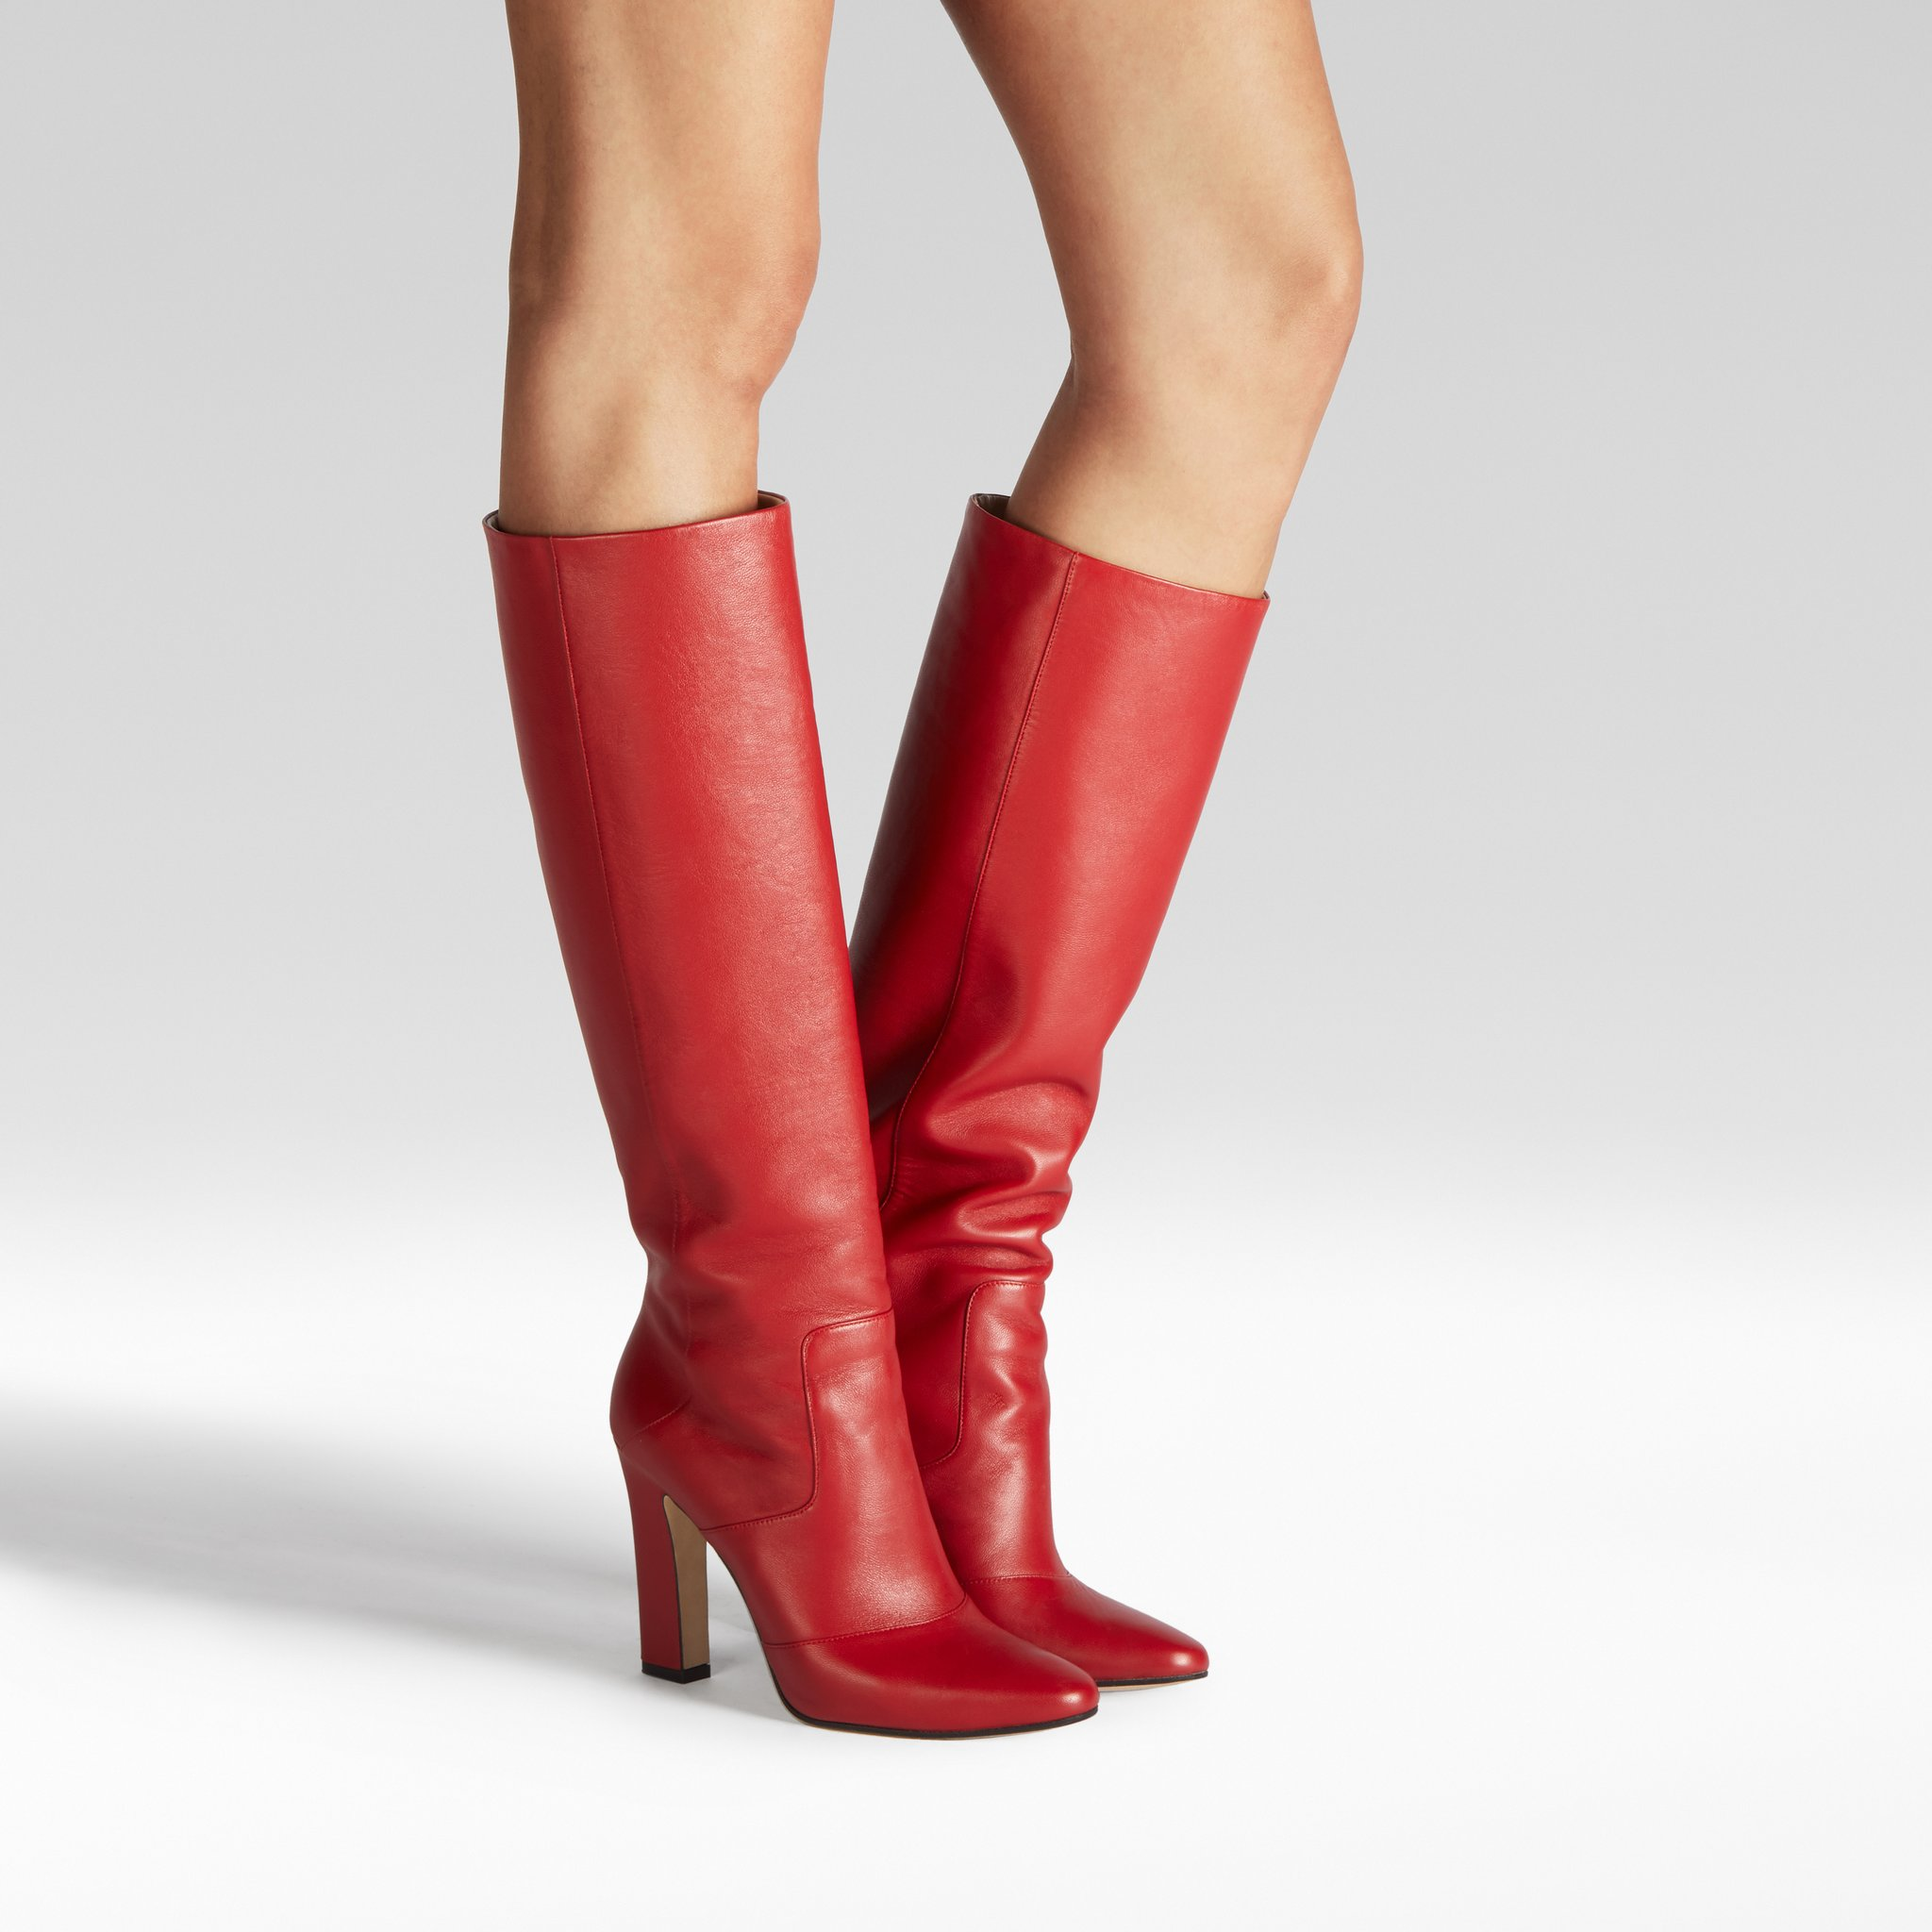 Tamara Mellon boots lust knee high boots nappa